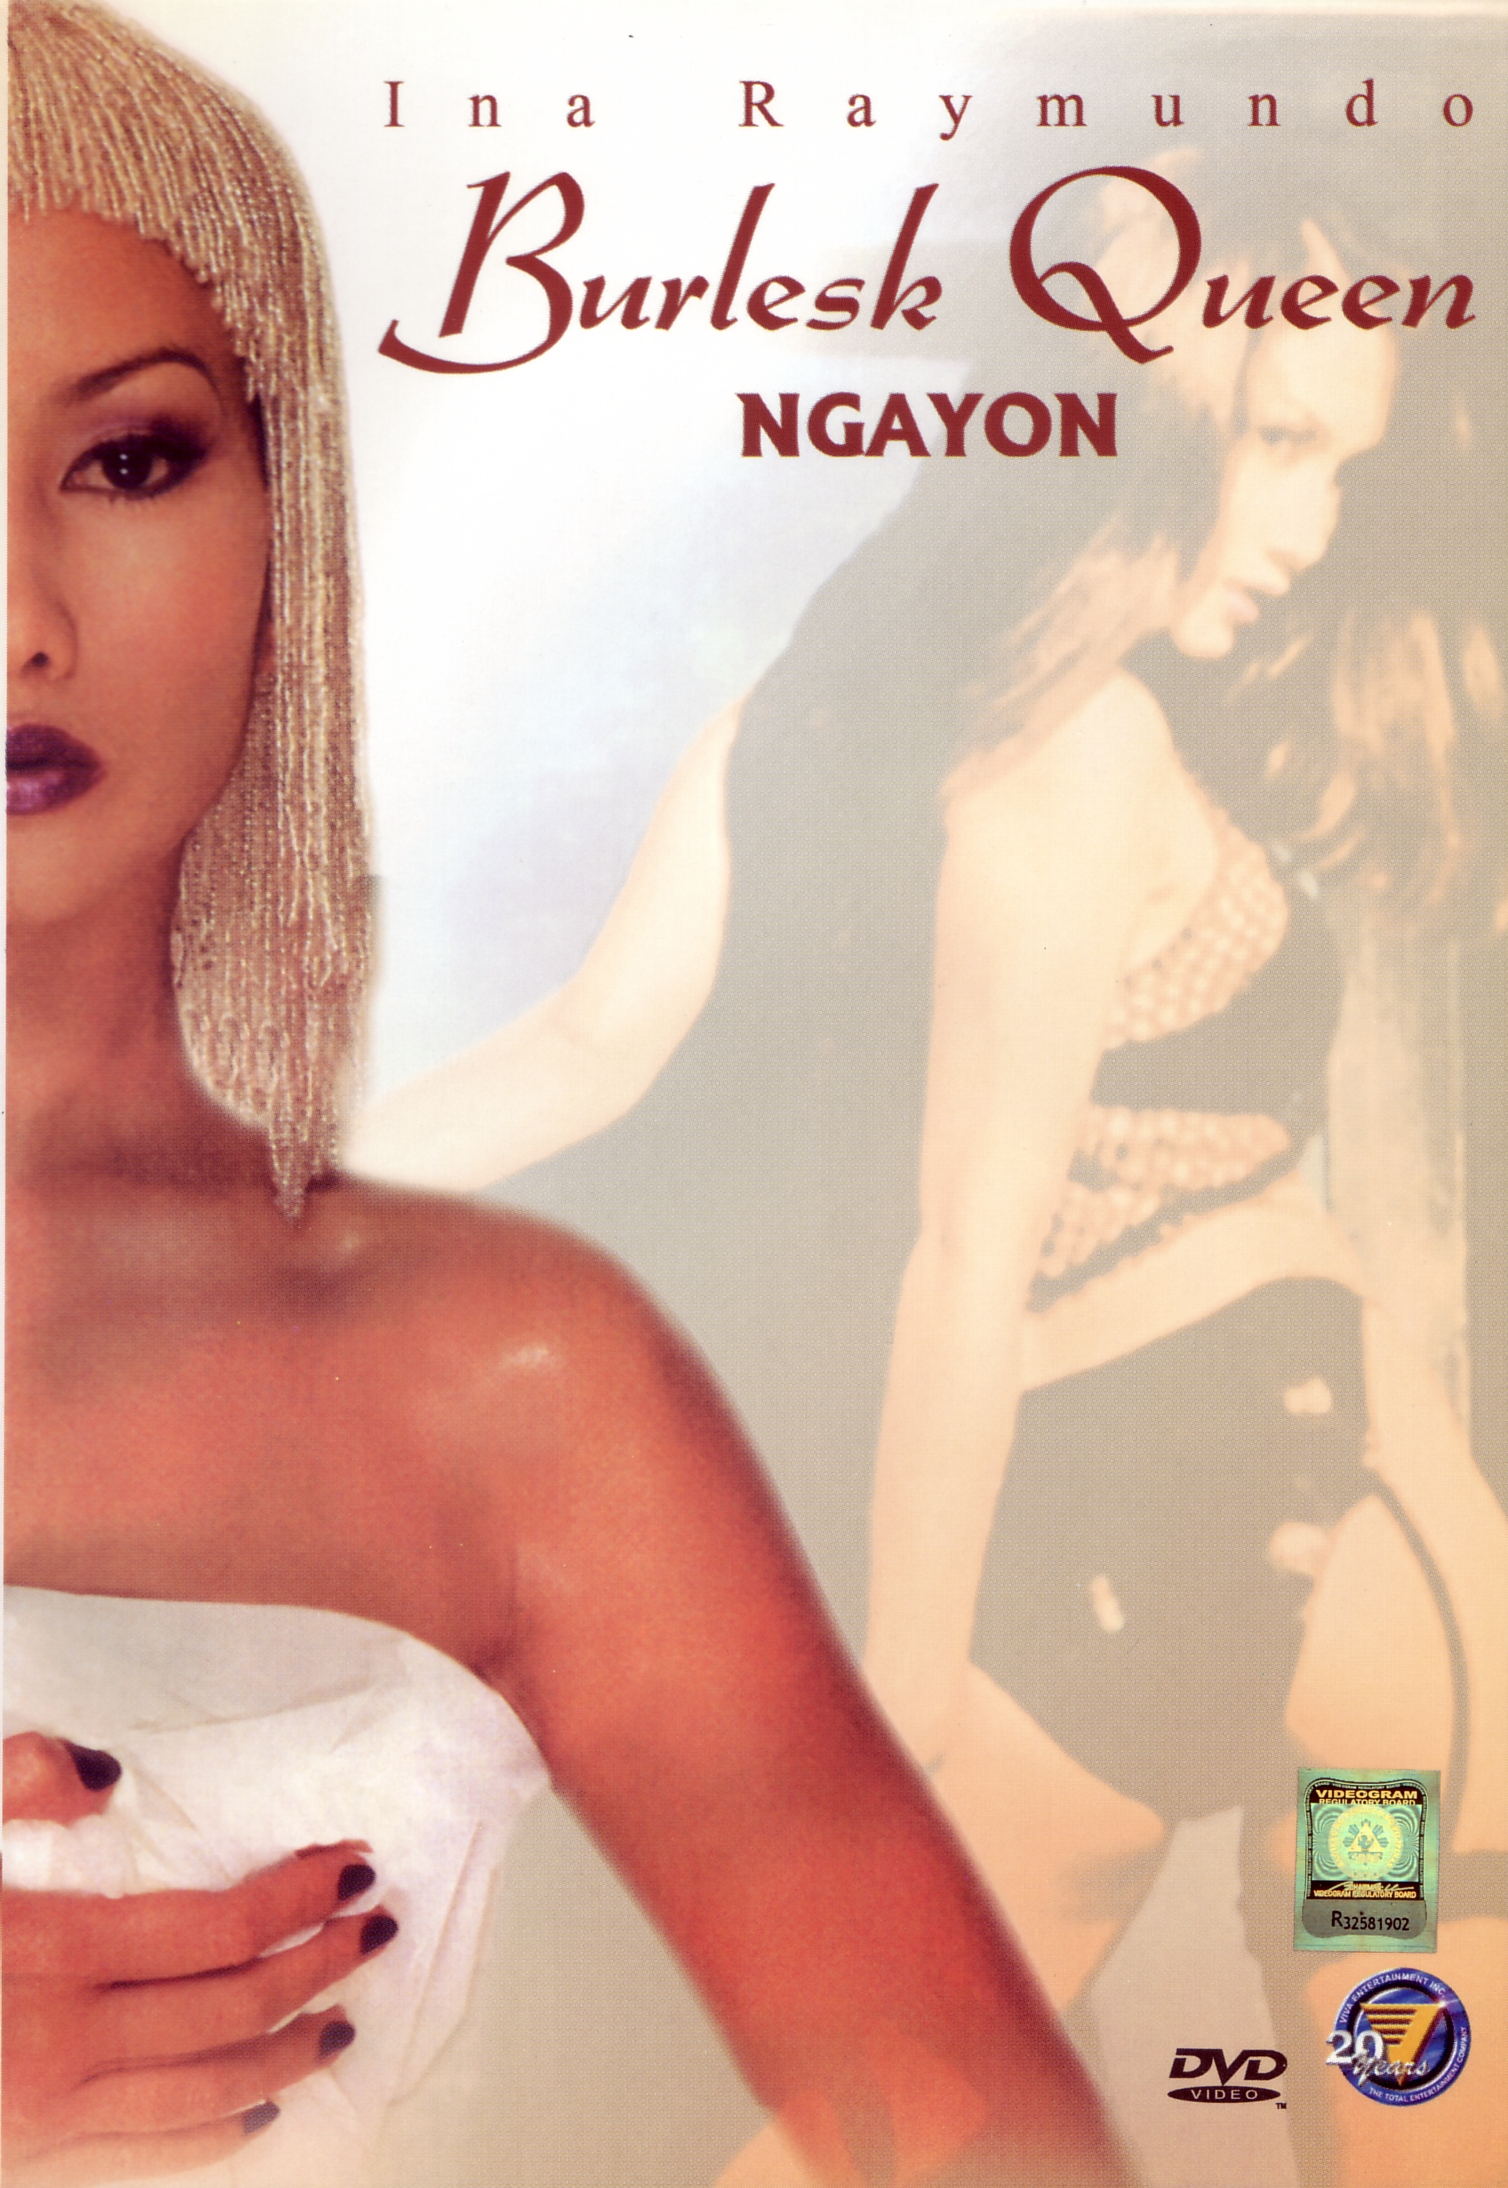 Burlesk Queen Ngayon